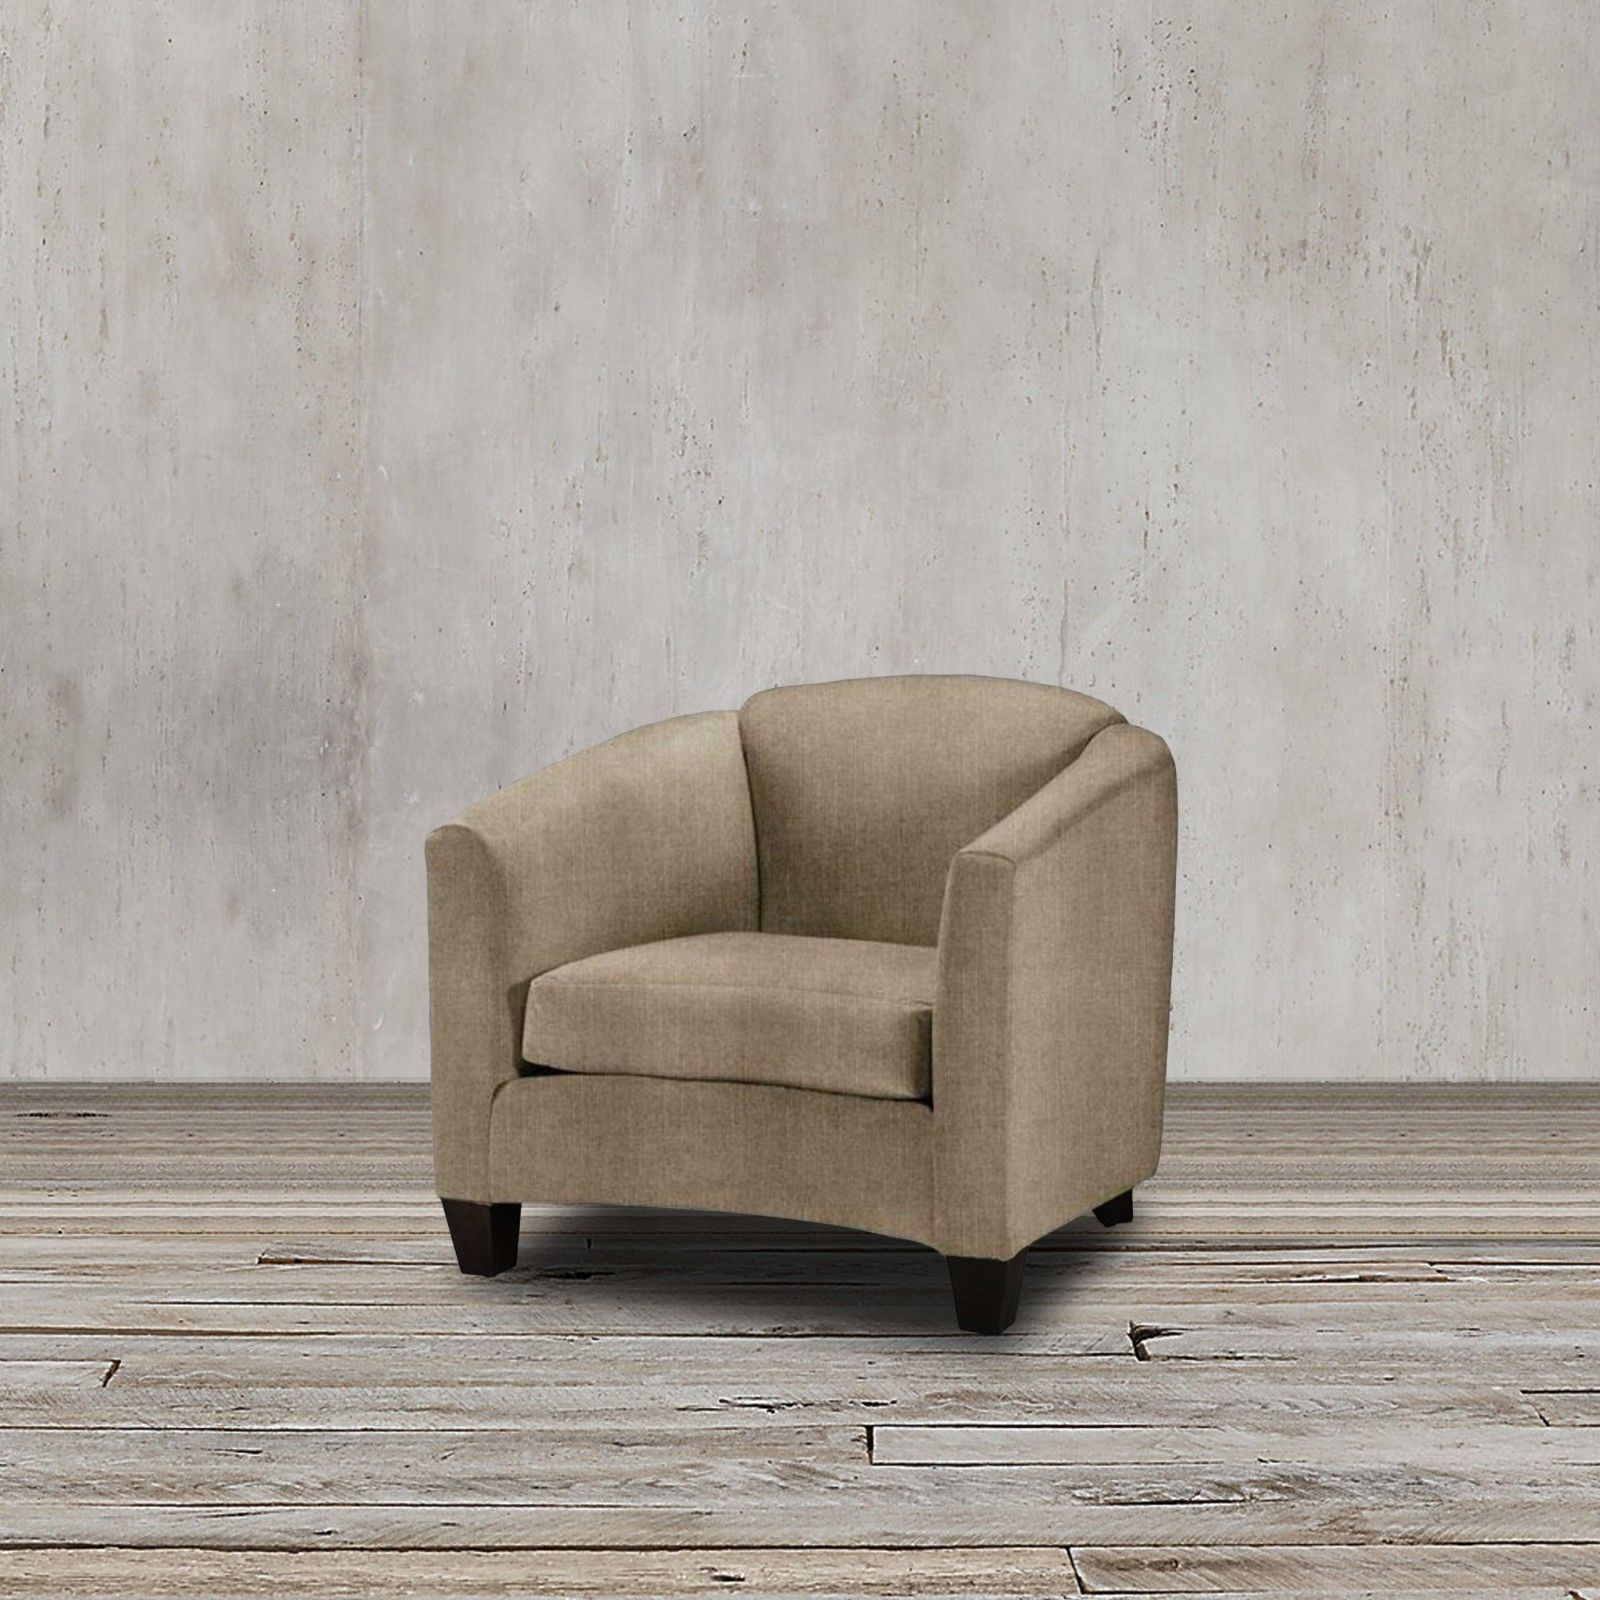 Proudly USA made. This club armchair exudes modern appeal with its plush, inviting frame design and taupe linen upholstery in addition to its durable quality that ensures you get to enjoy this masterpiece for years to come.